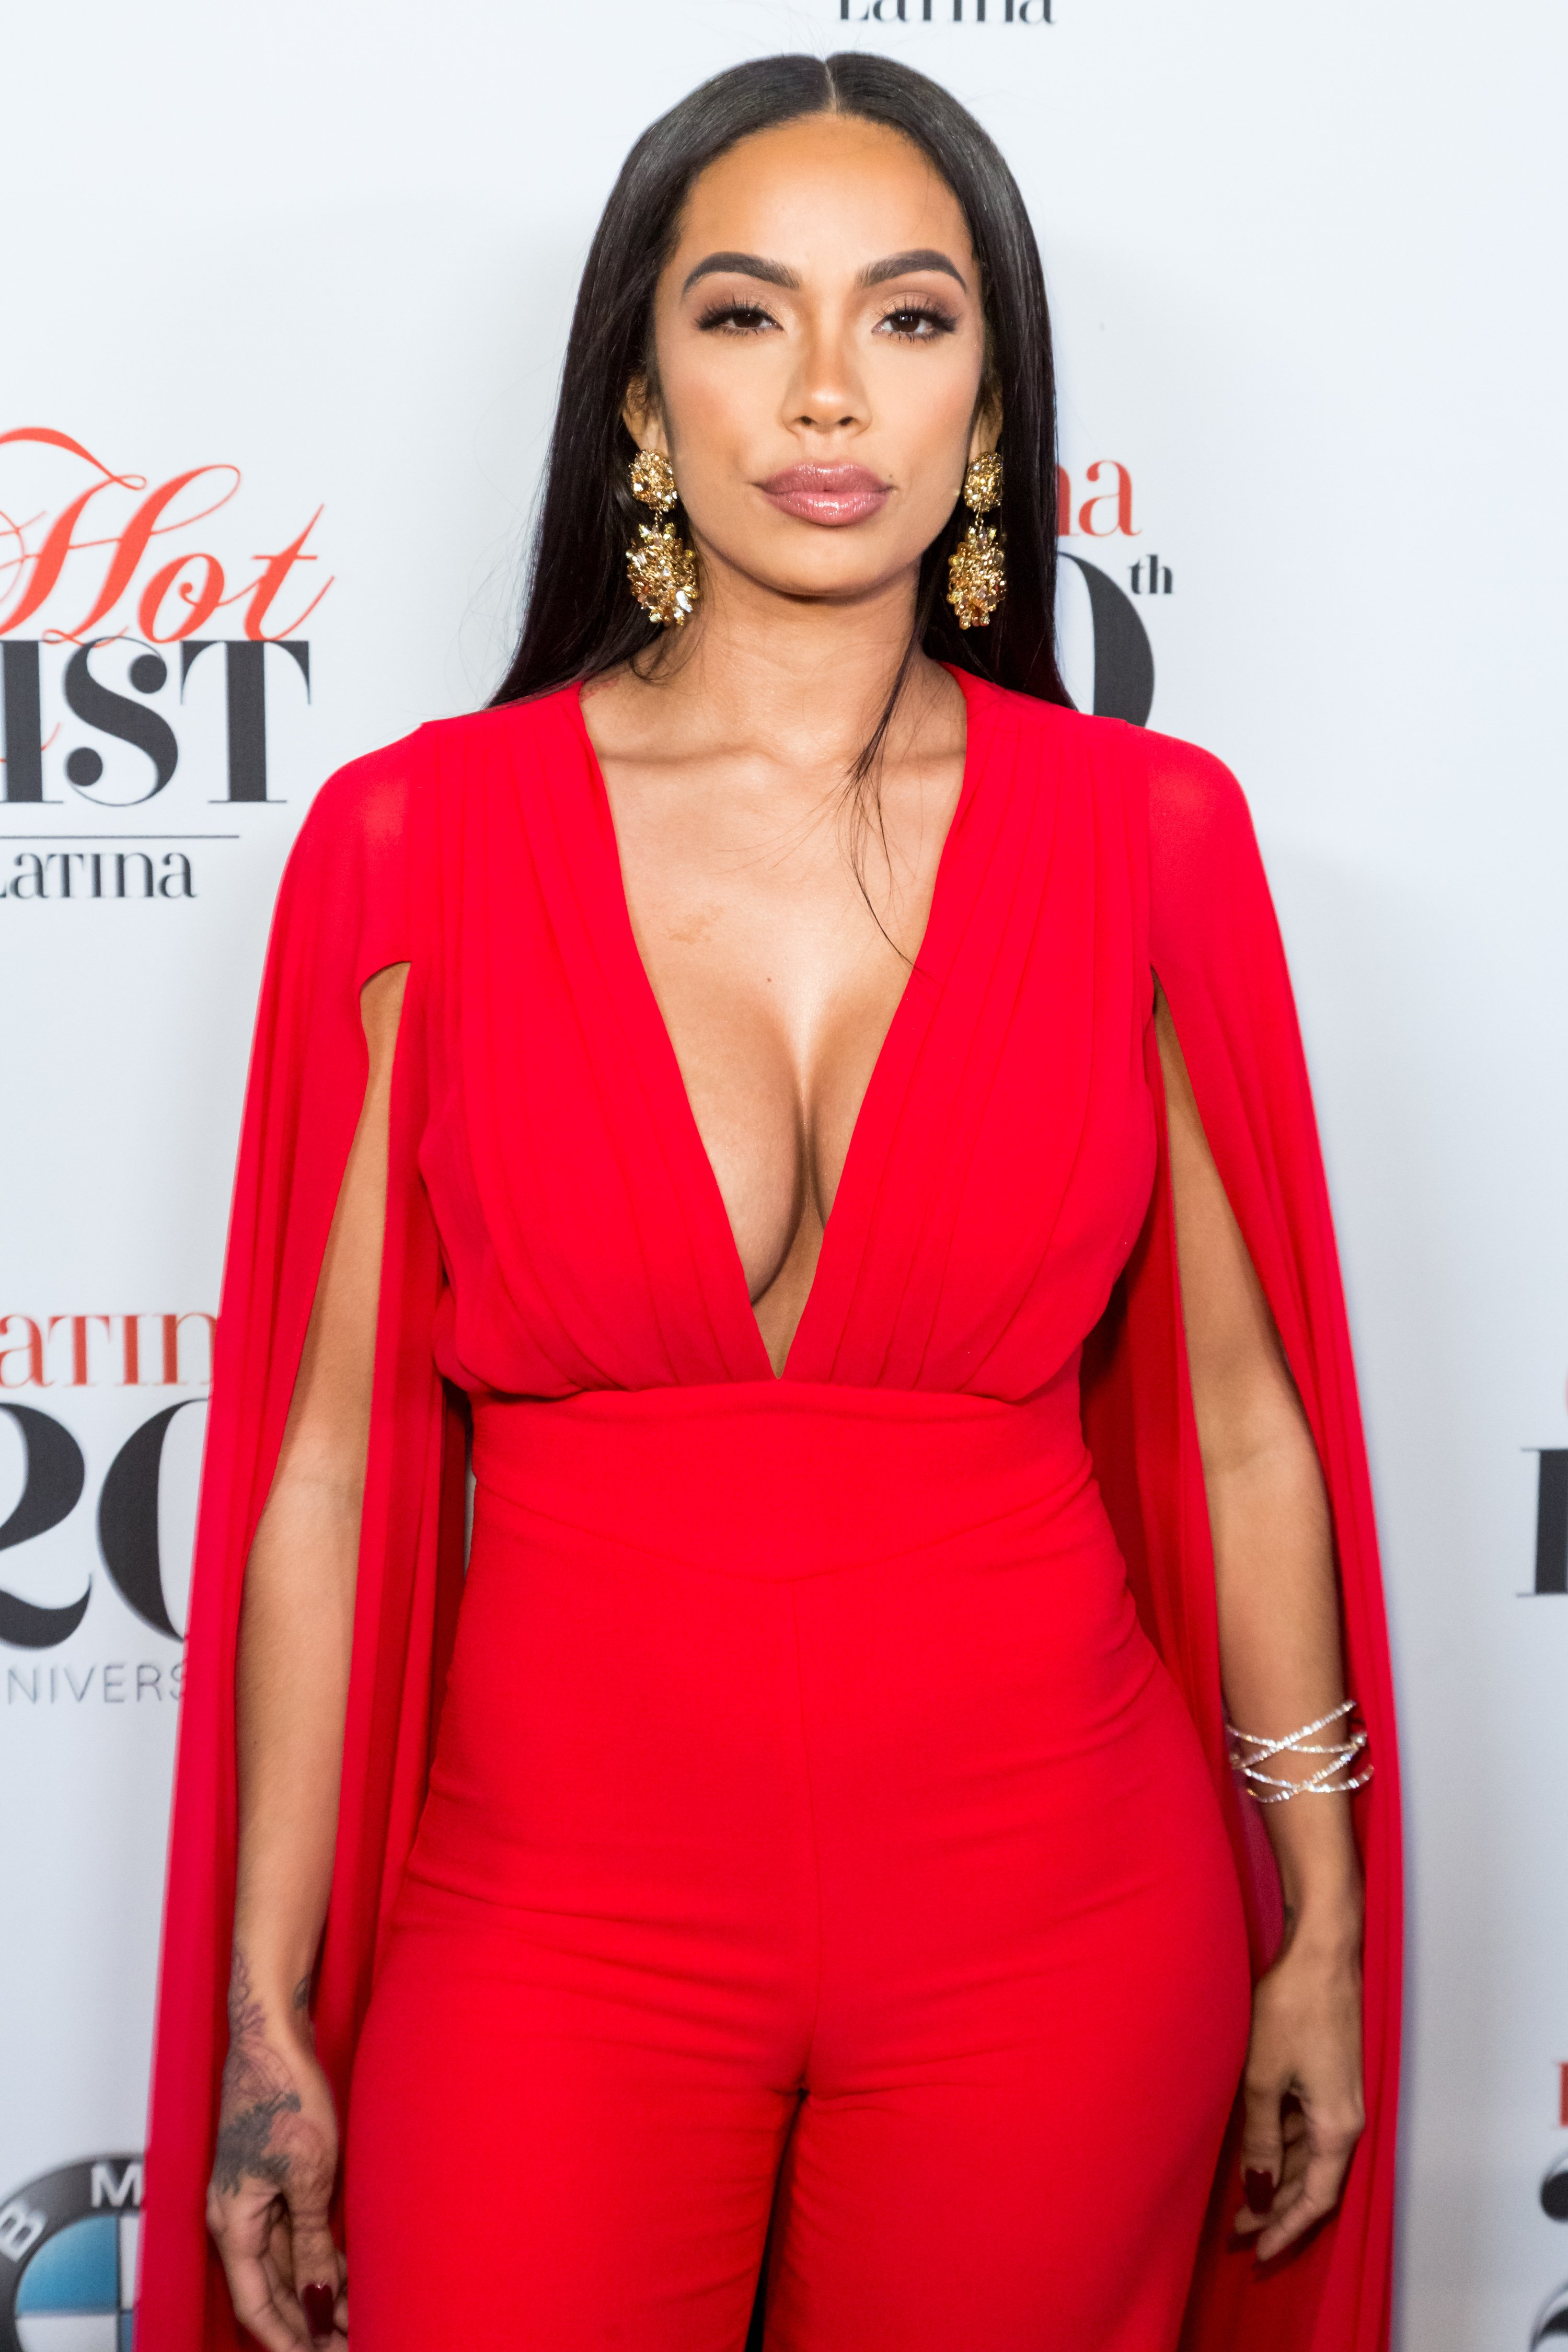 """Erica Mena at the Latina Magazine's """"Hollywood Hot List"""" Honorees Event at STK Los Angeles on November 2, 2016 in Los Angeles, California.  Source: Getty Images"""